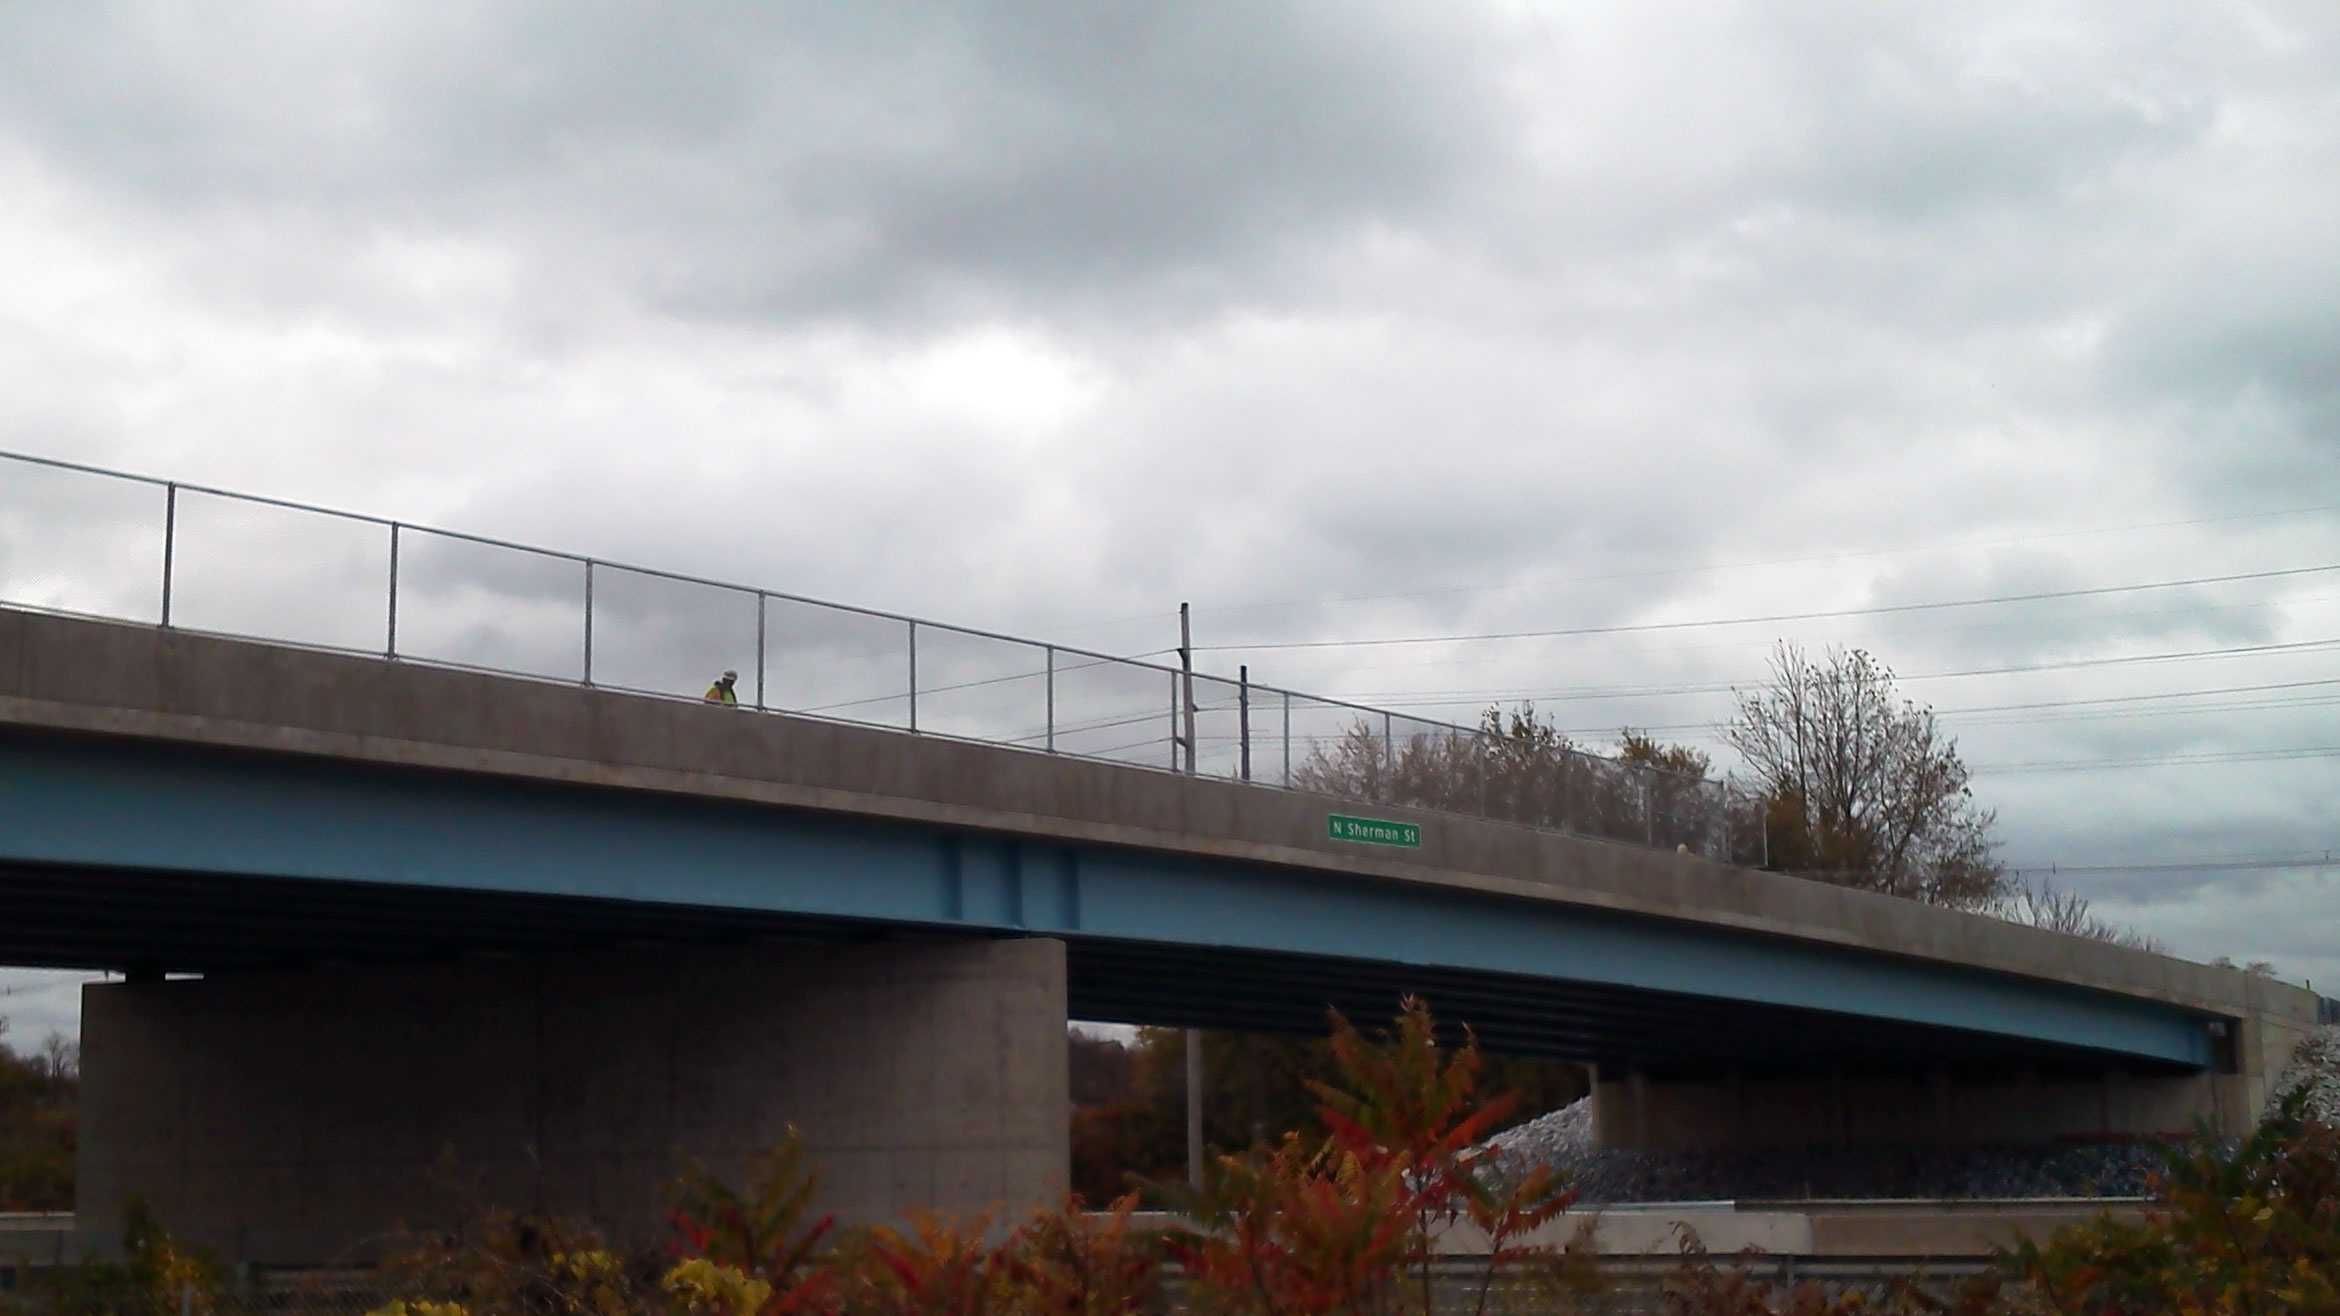 11.1 North Sherman Street Bridge